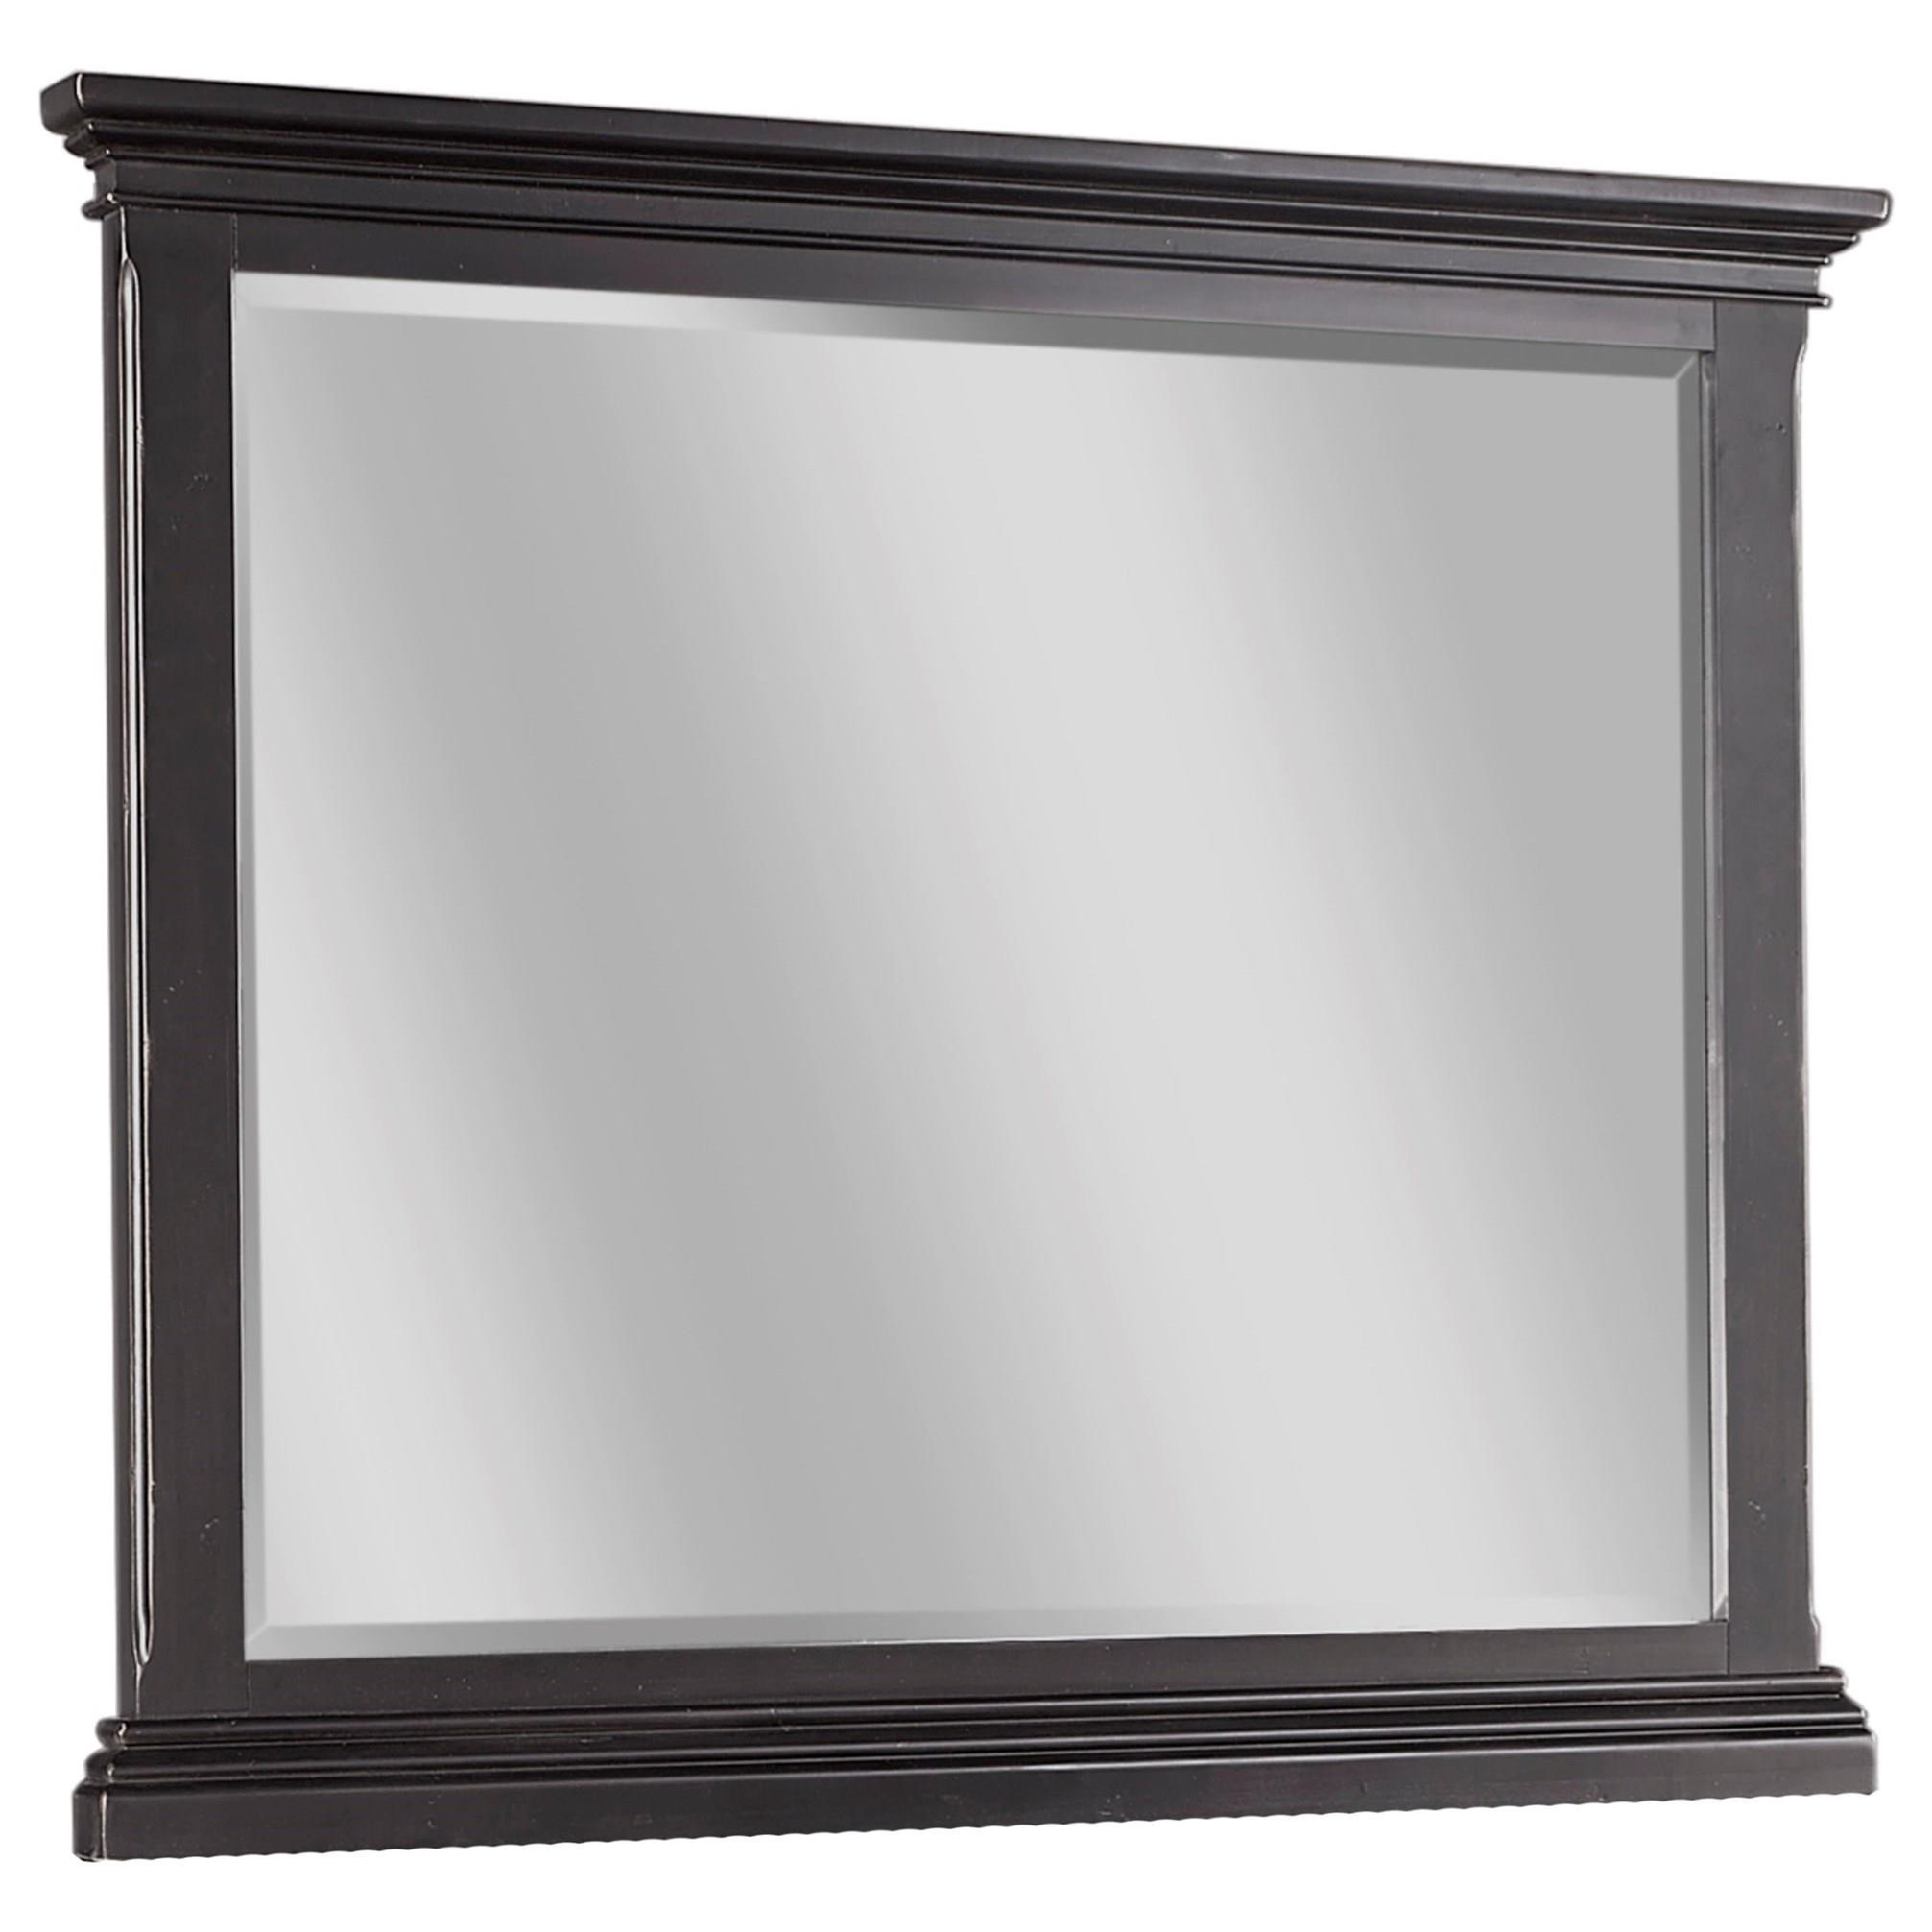 Oxford Landscape Mirror  by Aspenhome at Stoney Creek Furniture